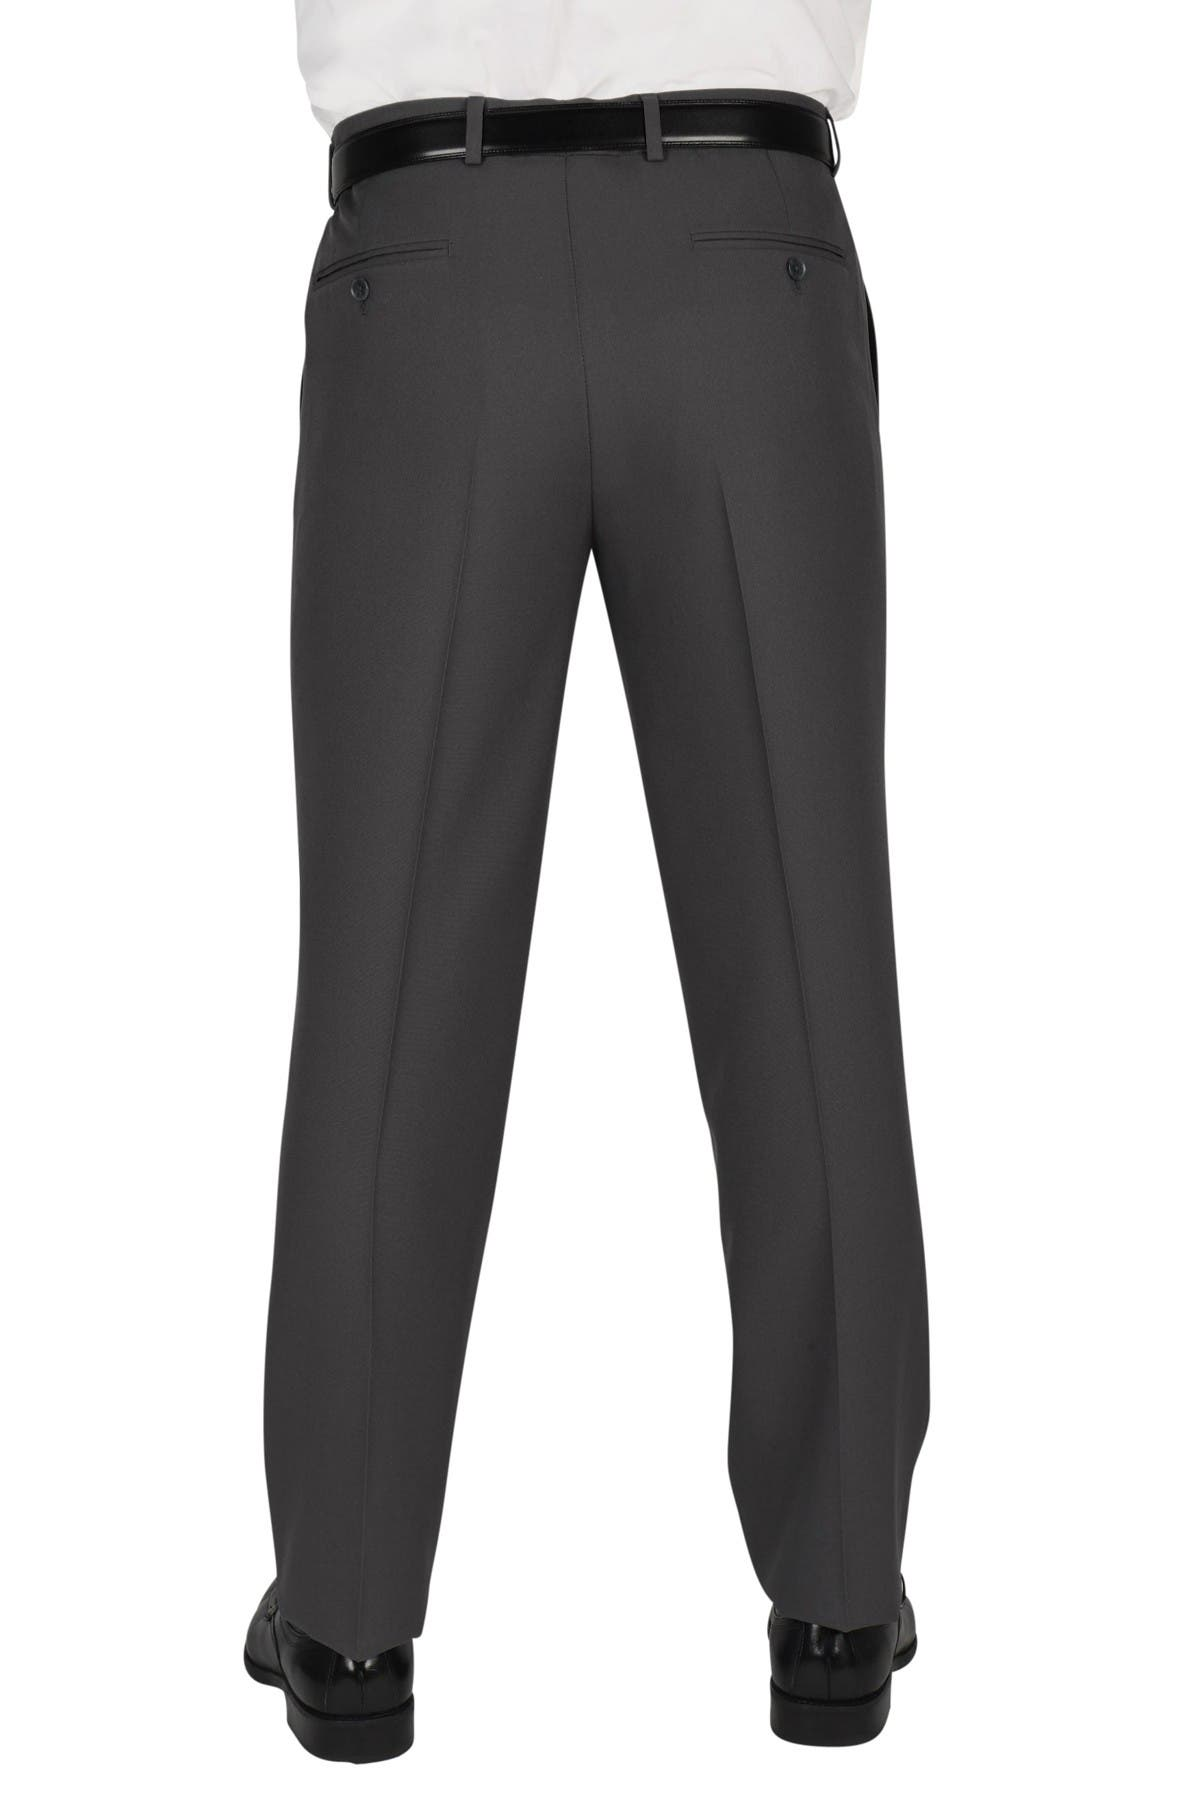 """Image of Dockers Solid Flat Front Stretch Waistband Slim Fit Dress Pants - 30-34"""" Inseam"""